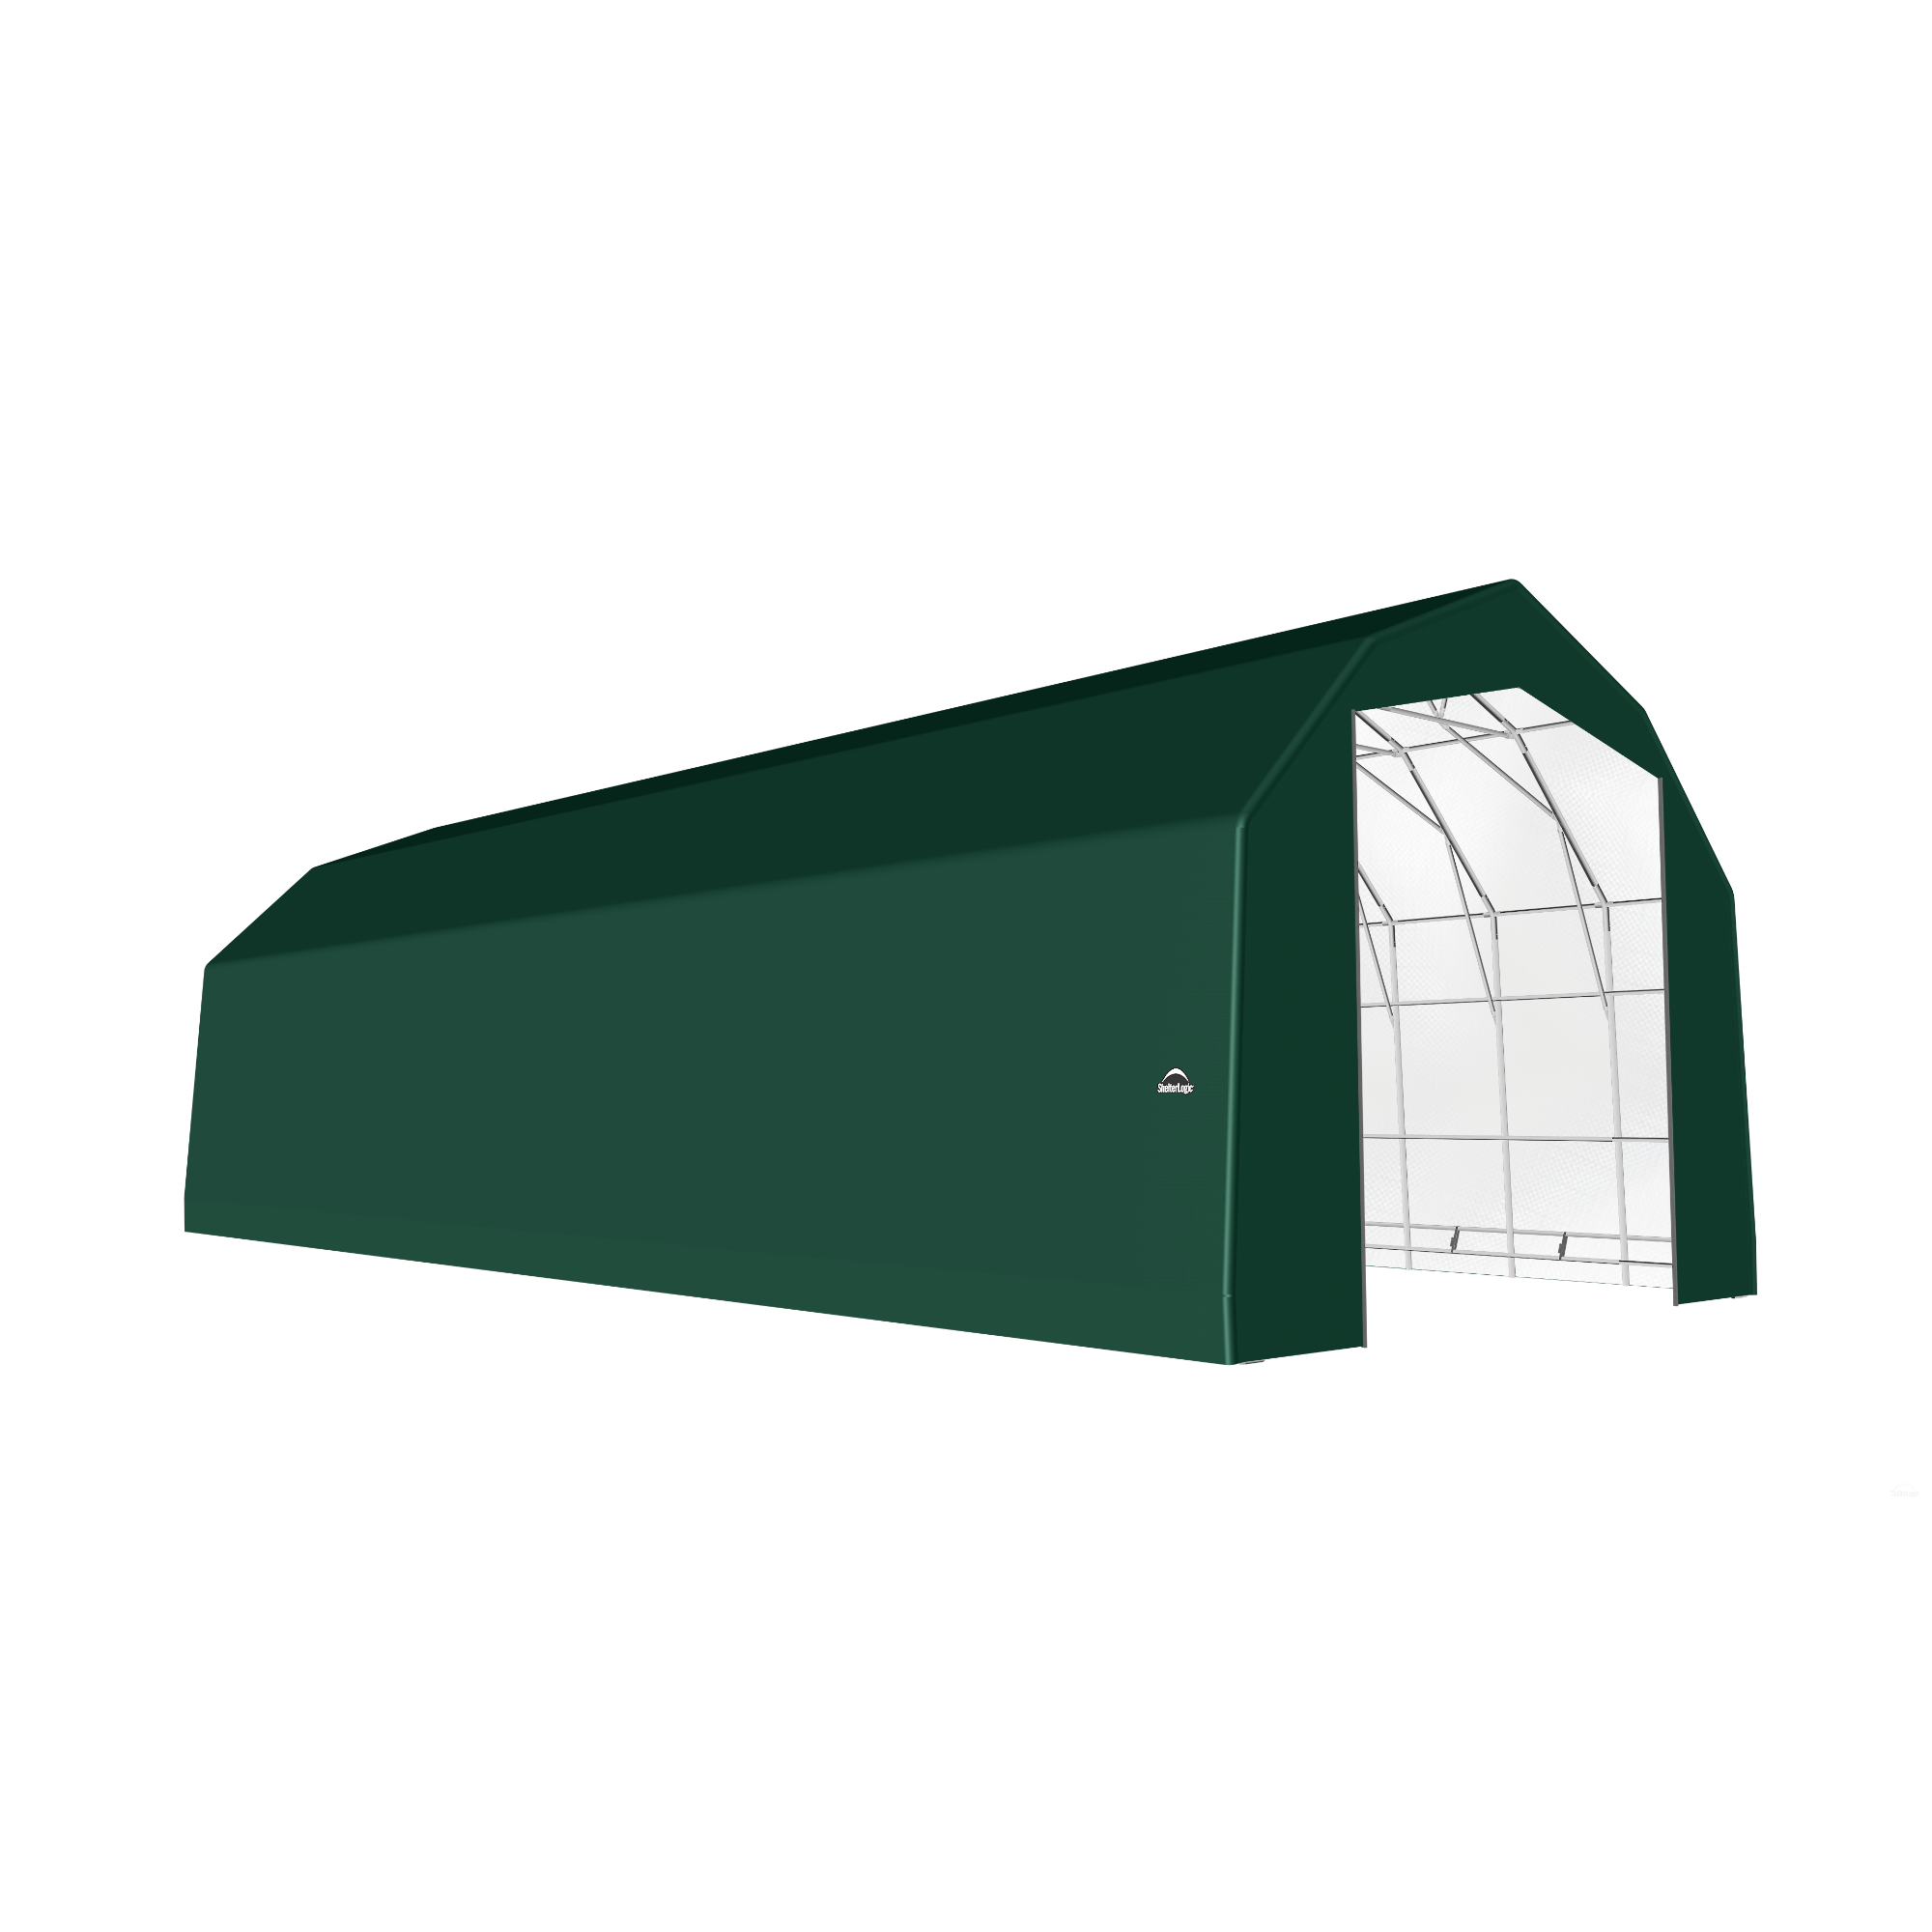 SP Barn 25X56X20 Green 14 oz PE Shelter